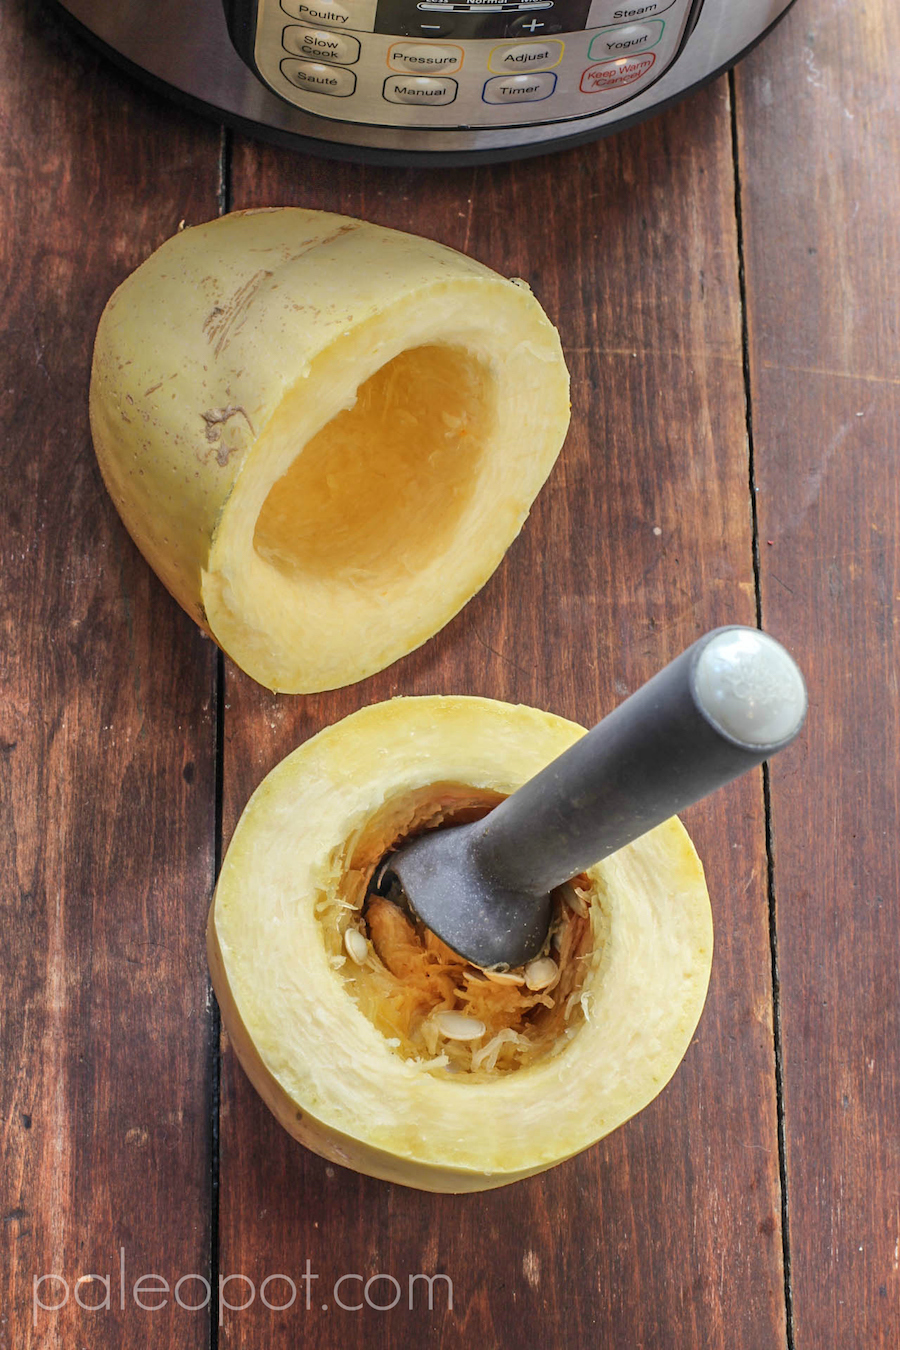 spaghetti_squash_ice_cream_scoop_wm